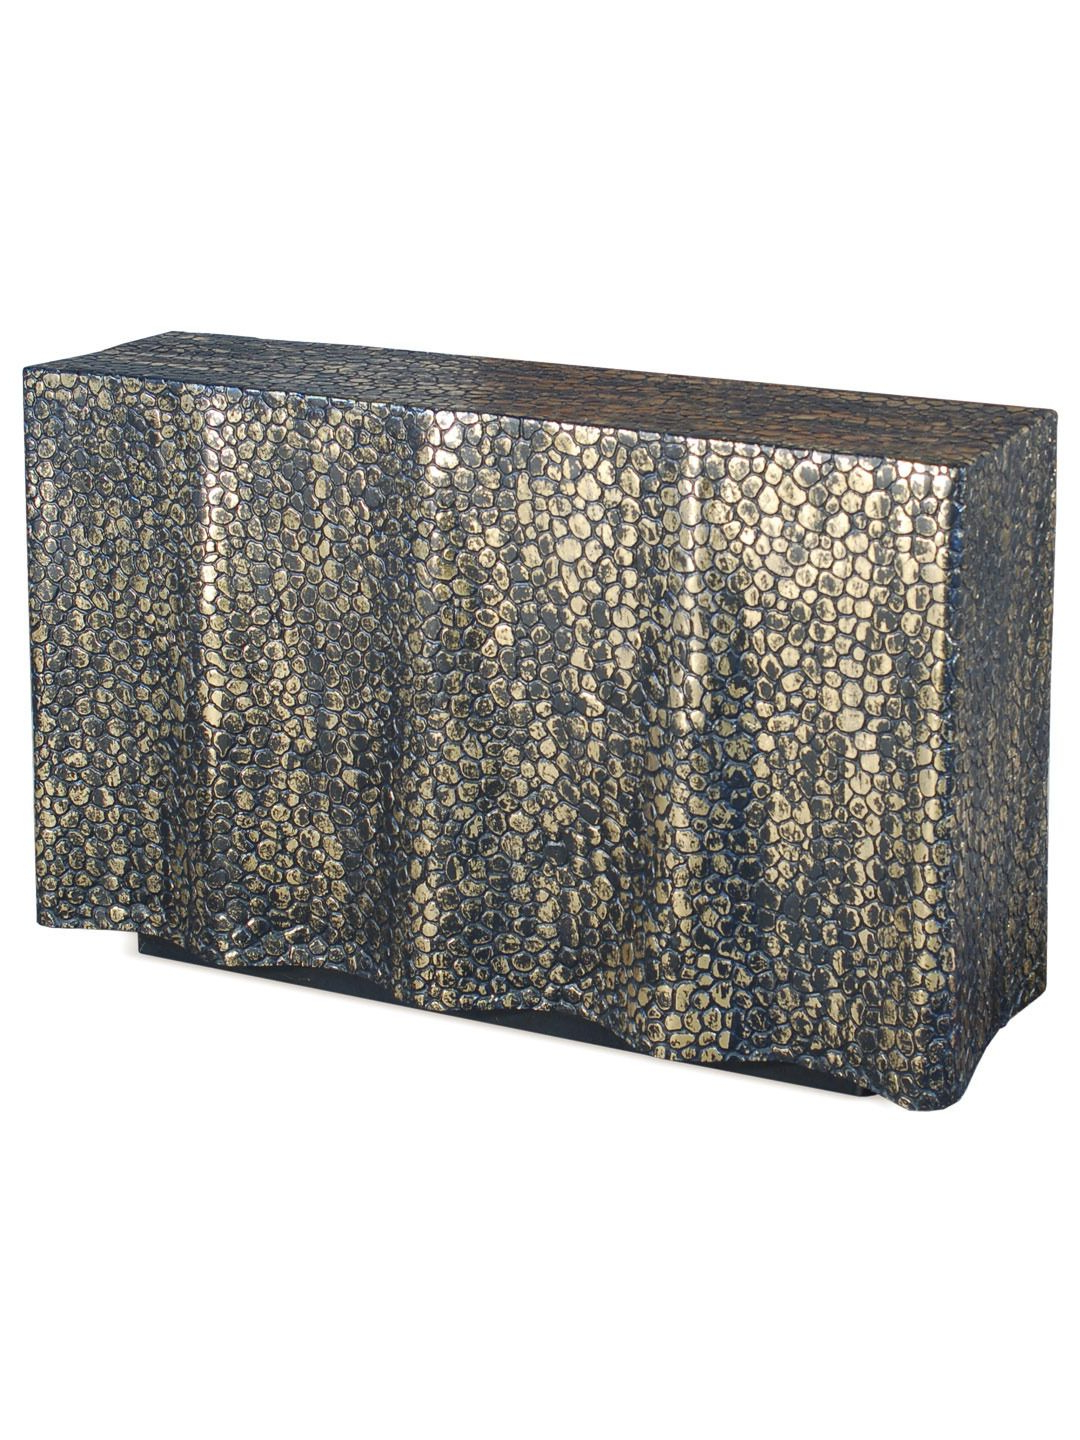 Curtain Console Tablephillips Collection At Gilt | Tables Inside Phillip Brass Console Tables (View 2 of 20)